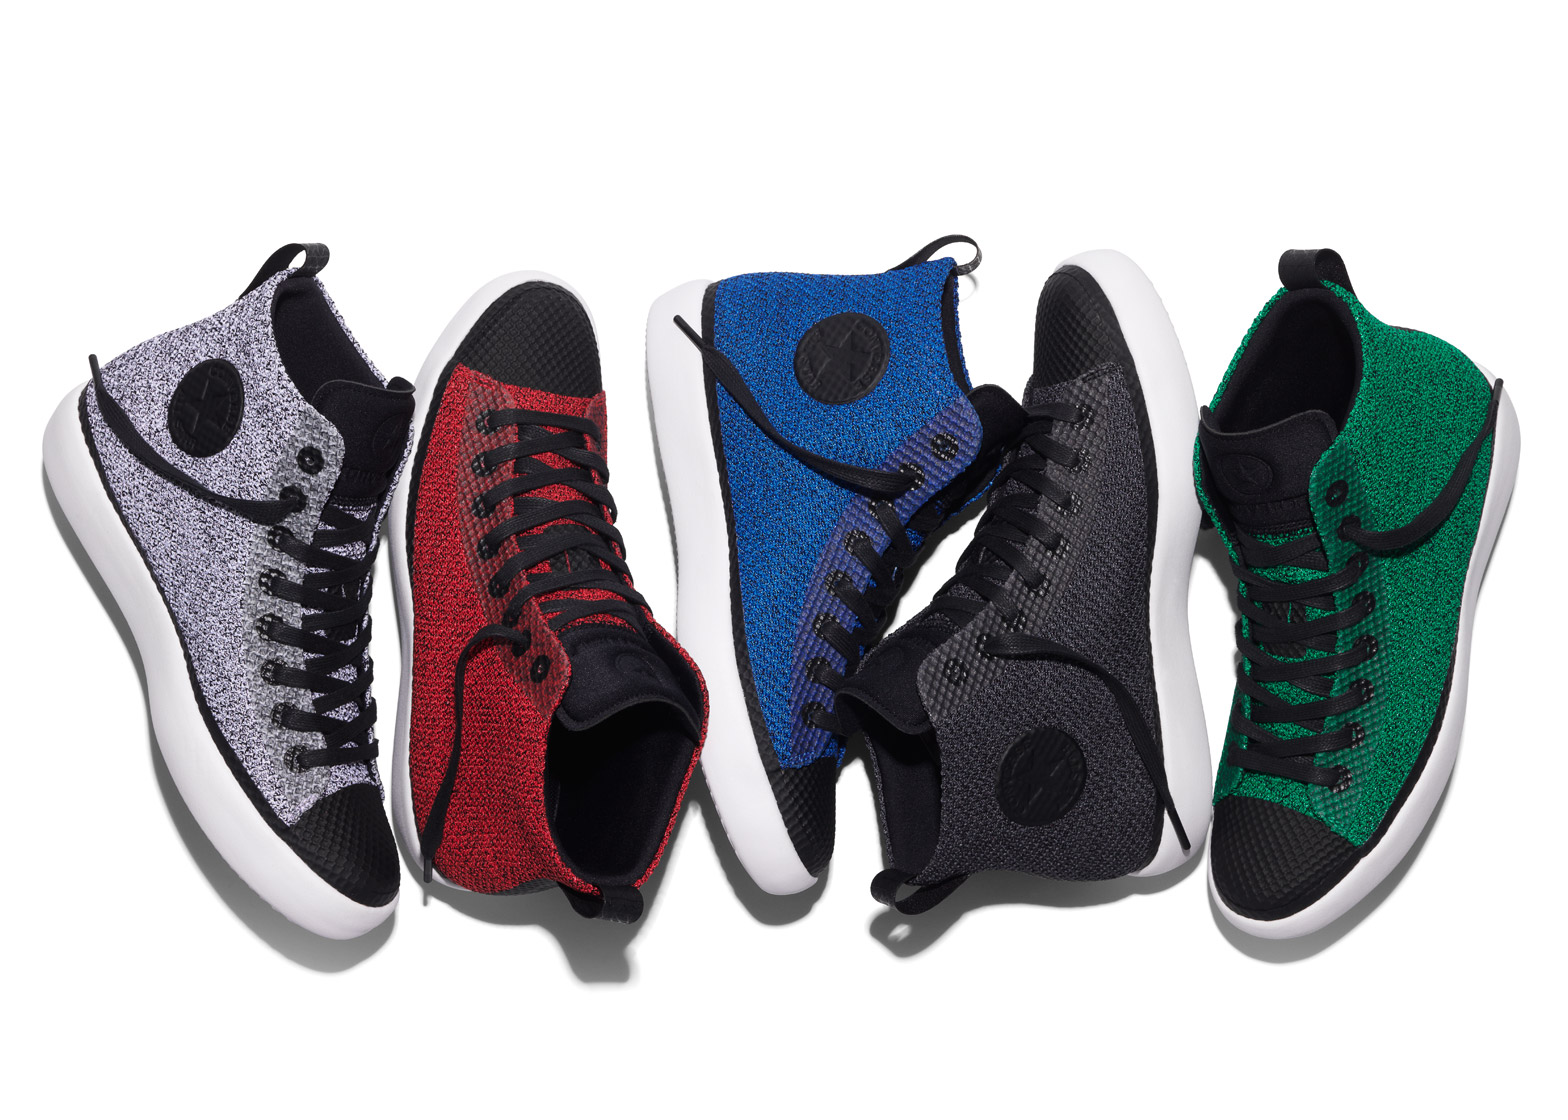 d730fdcaa33d Converse continues updates with All Star Modern trainer